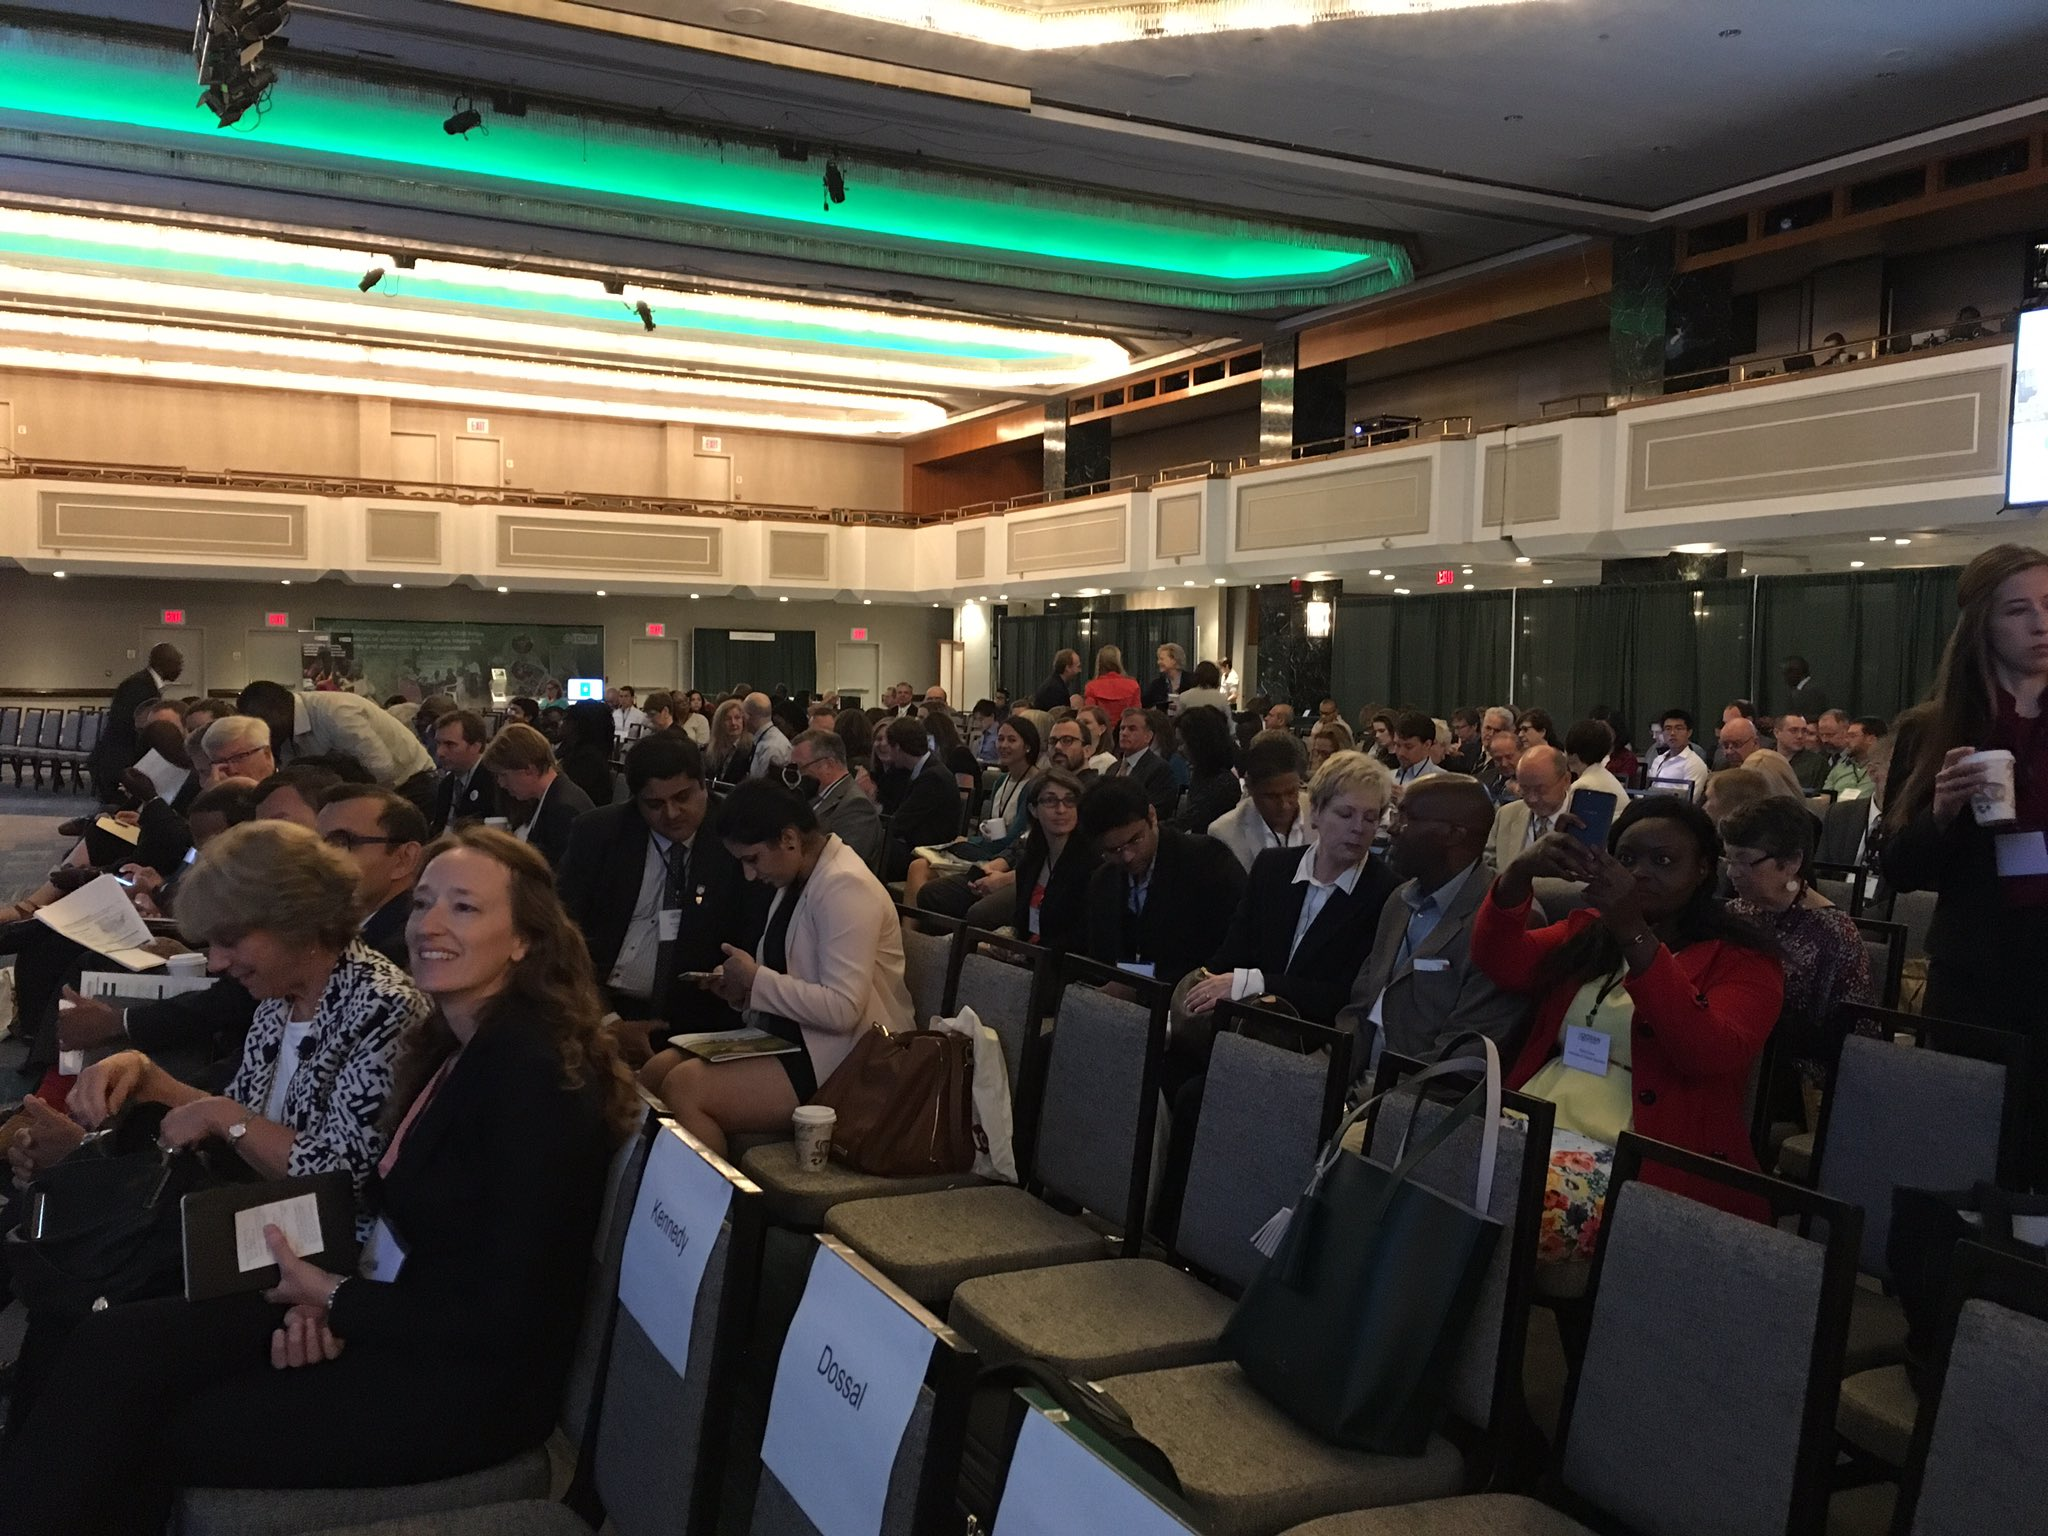 .#GODANSummit2016 - Just a few minutes from starting and the Grand Ballroom is filling up! https://t.co/qXk54J3nan